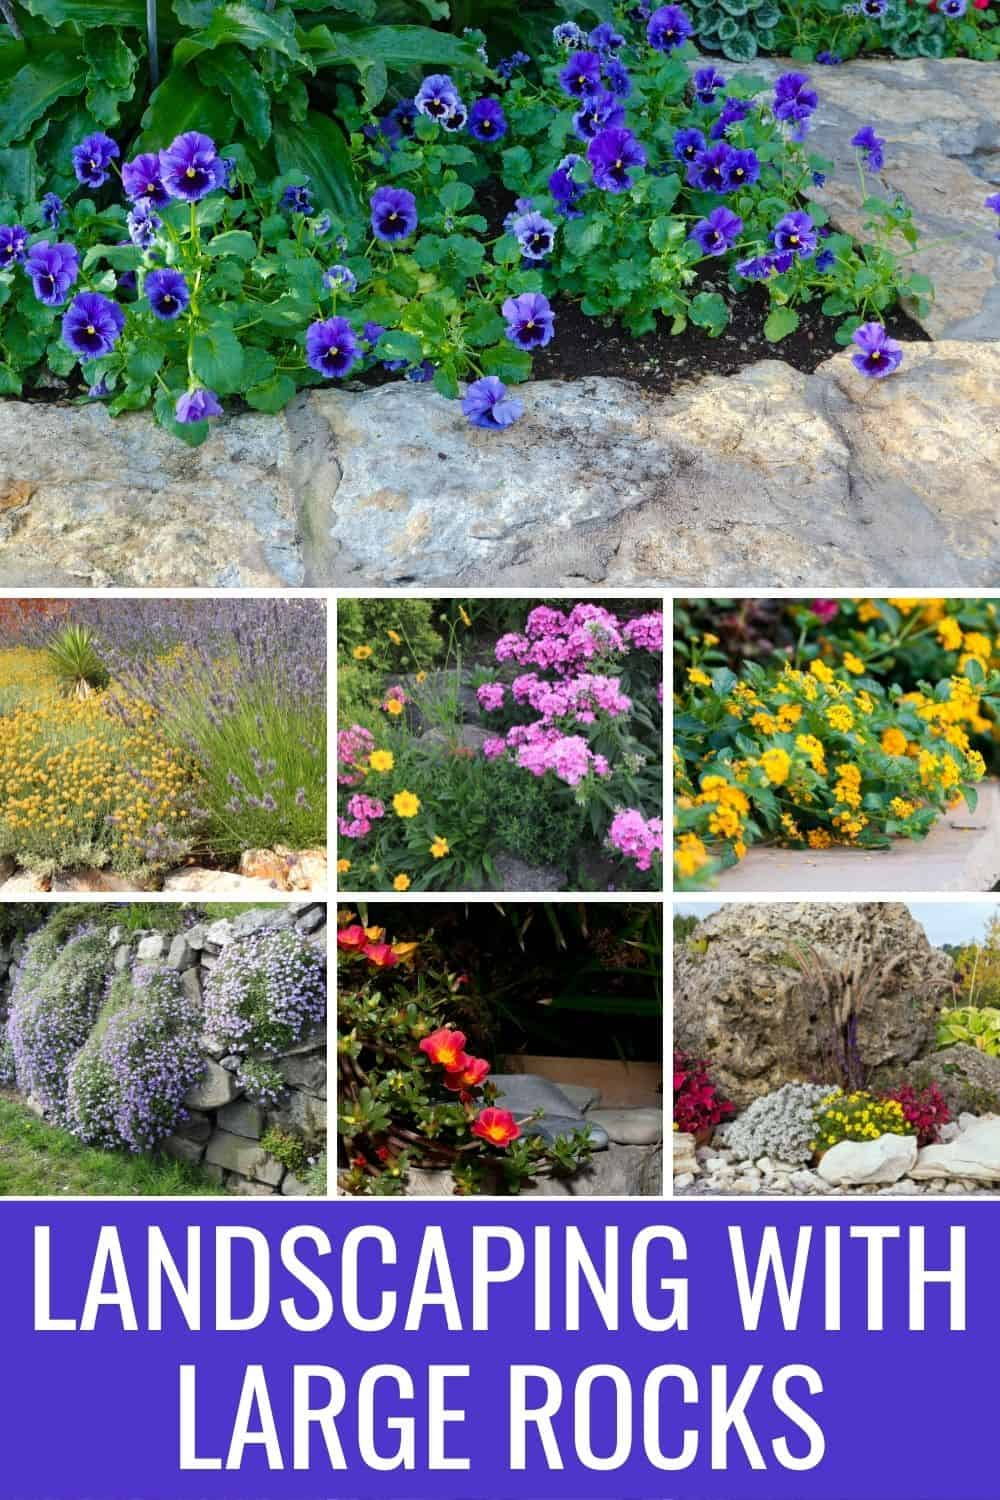 Landscaping with large rocks